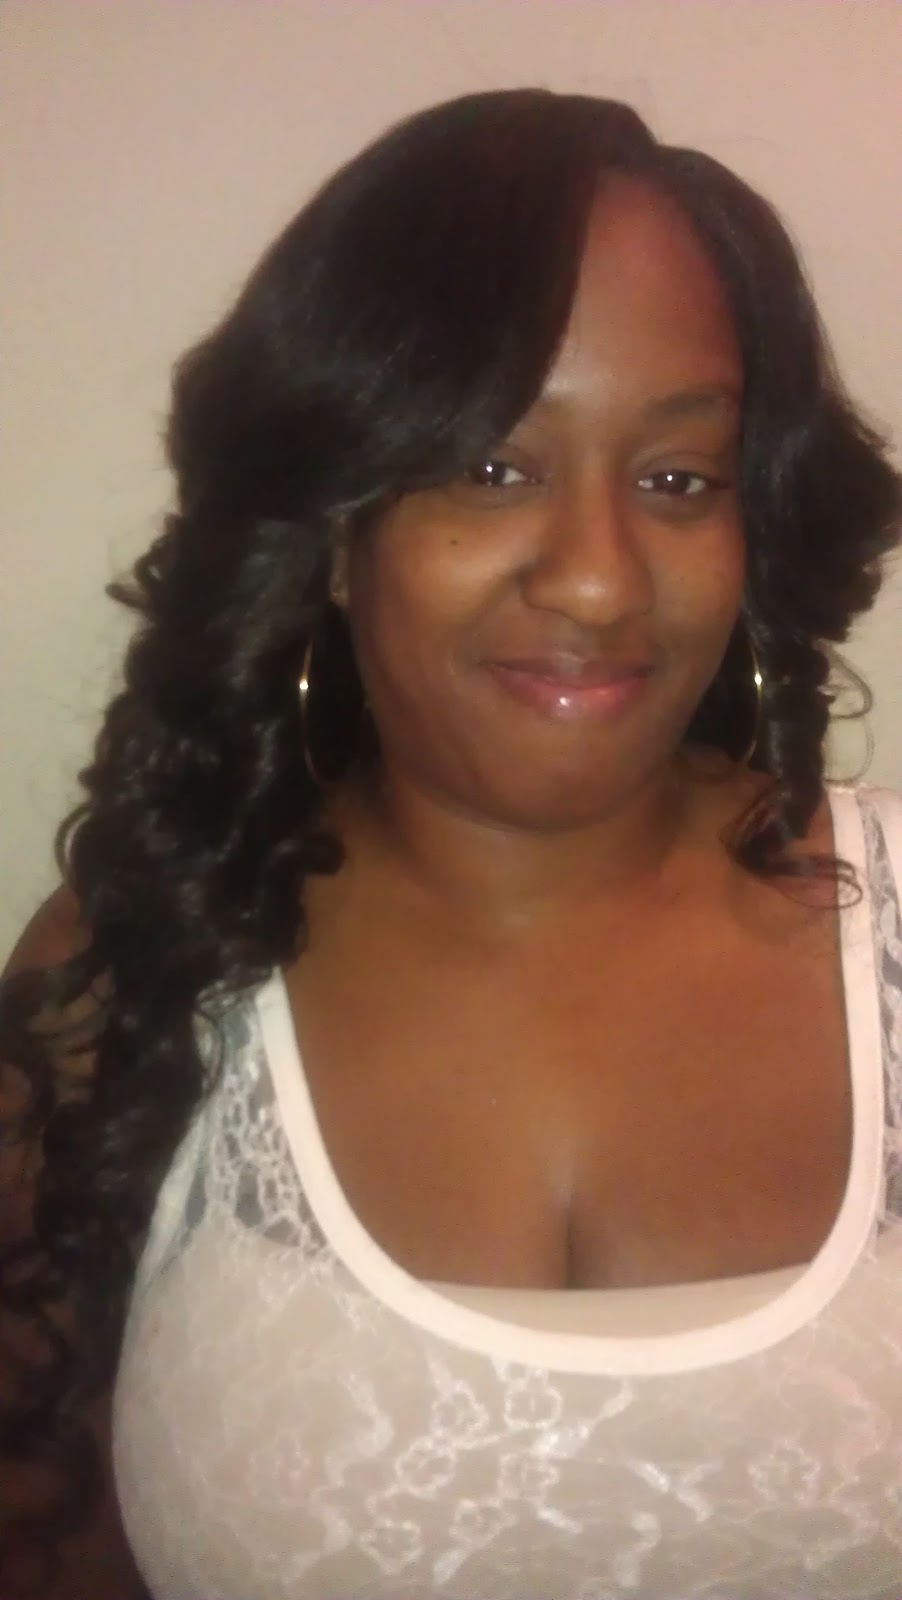 Sew in Bob with Bangs http://yinkasdesign.blogspot.com/2012/11/more-bobs-layers-cuts-and-feathers.html